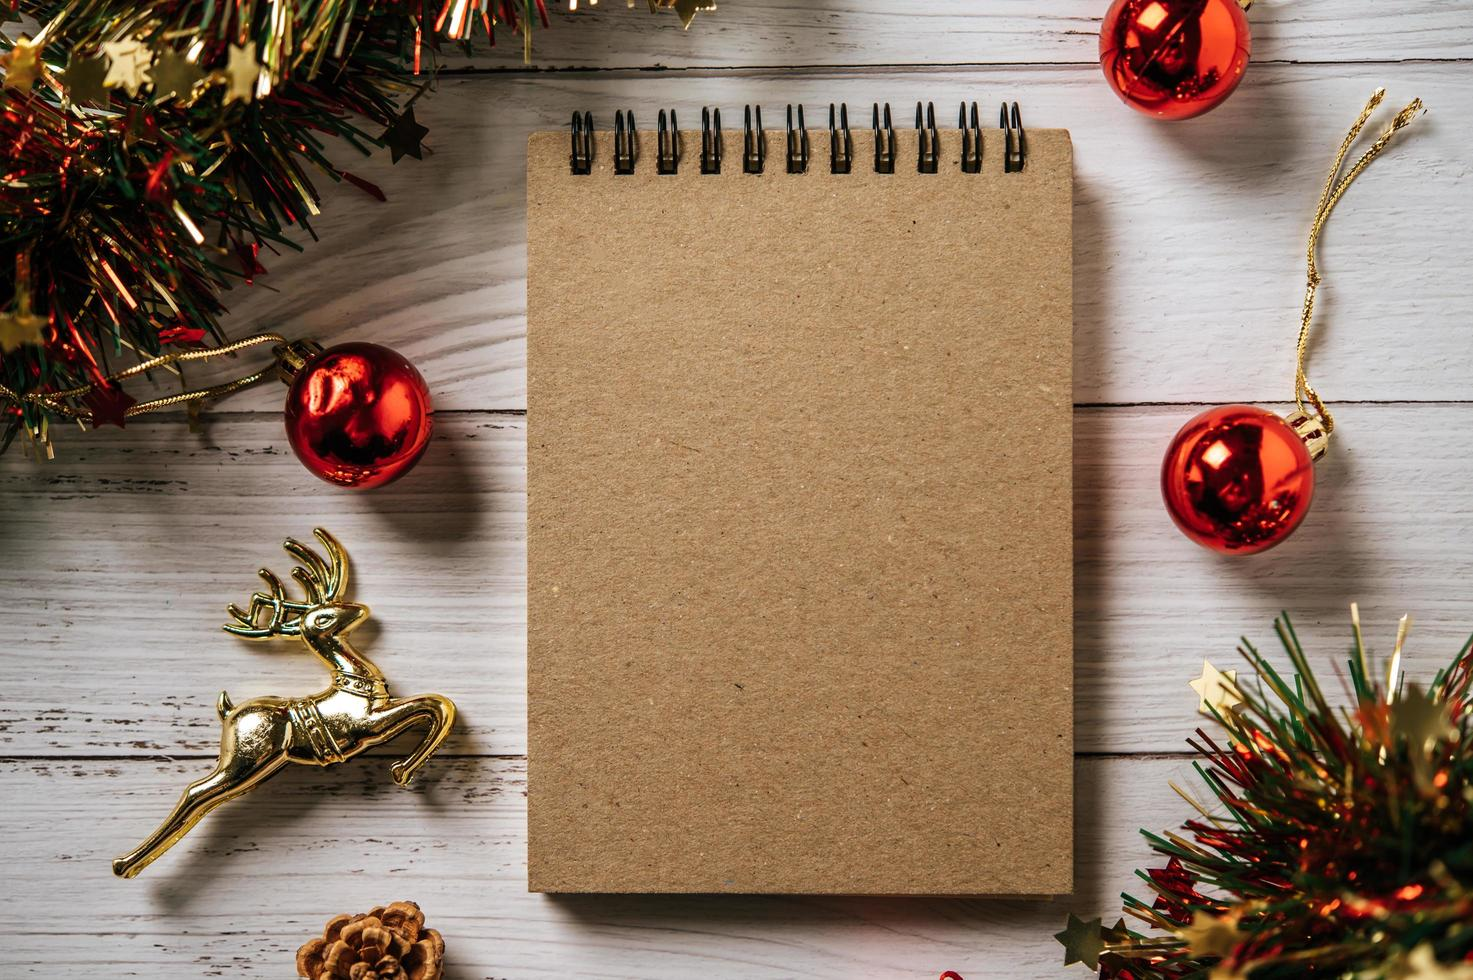 A notebook placed on a wooden background photo